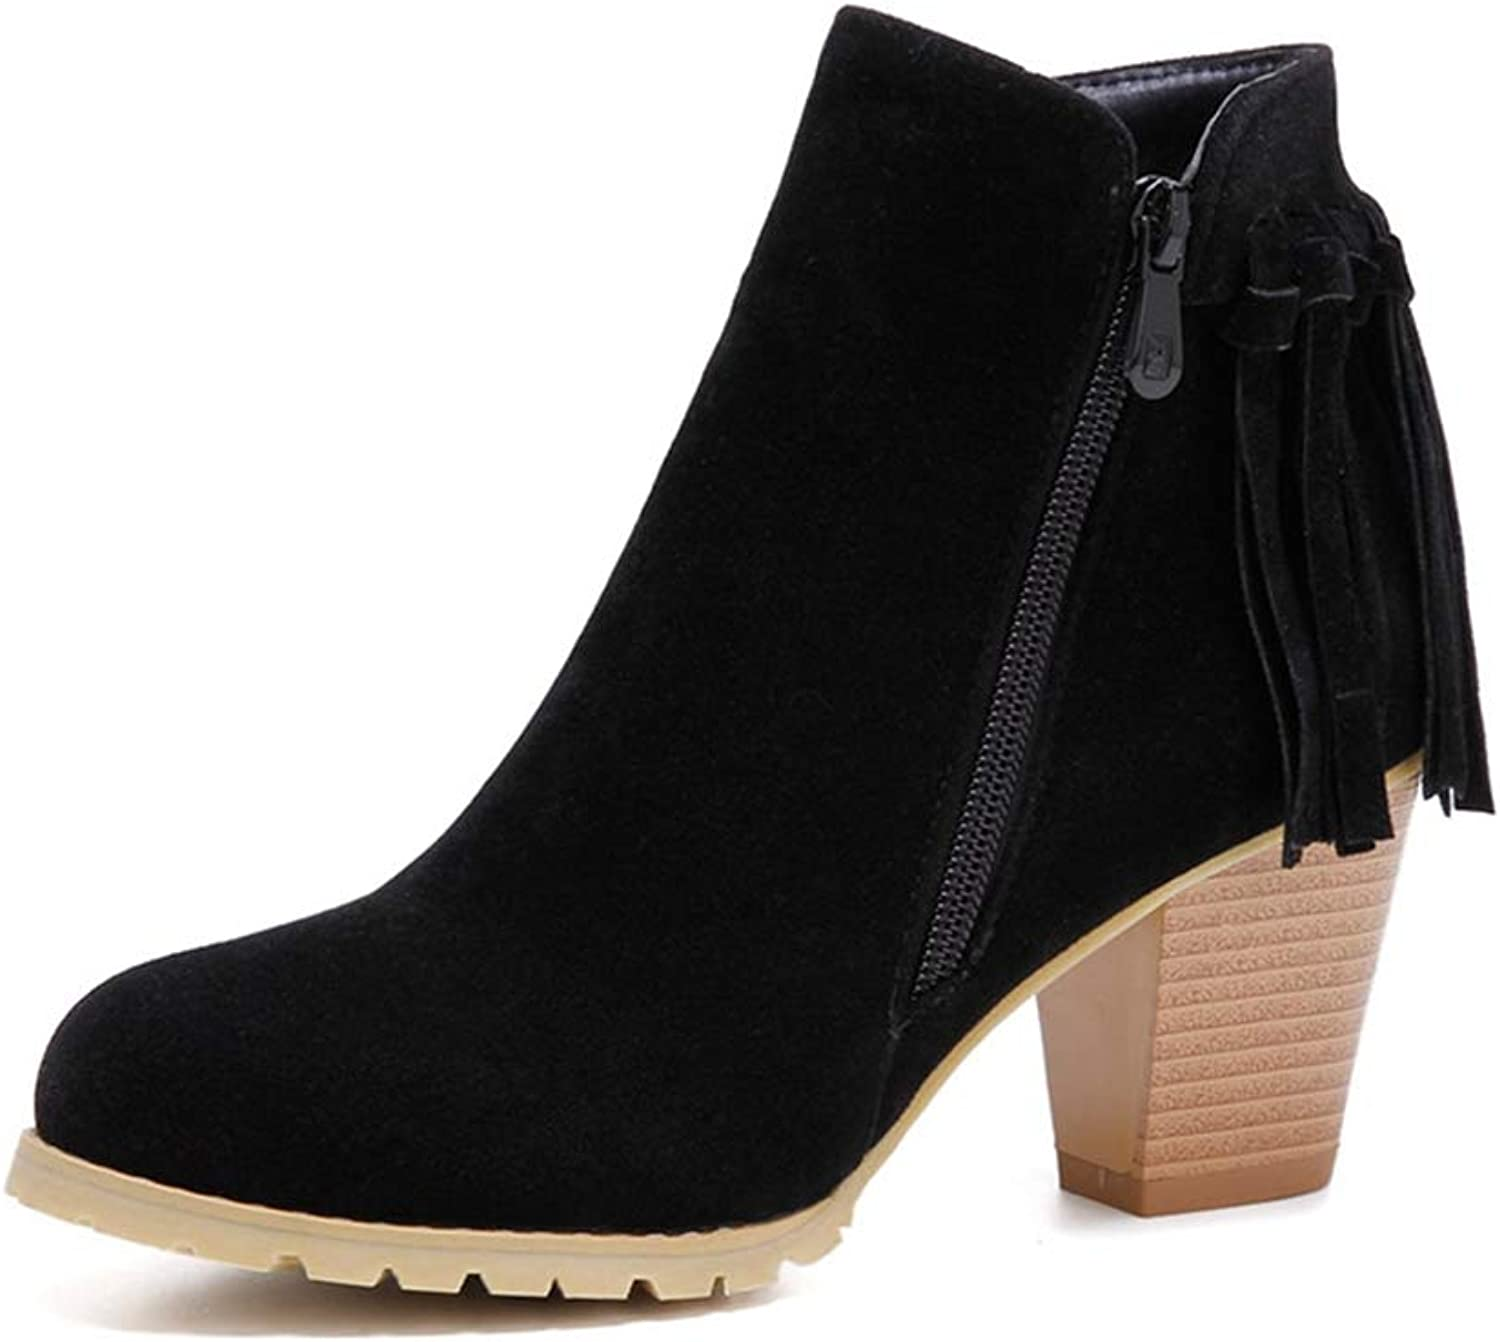 Hoxekle Women High Spike Heels Fringe Ankle Boots Leather Woman Winter Round Toe Thick Heel Short Plush Boot shoes